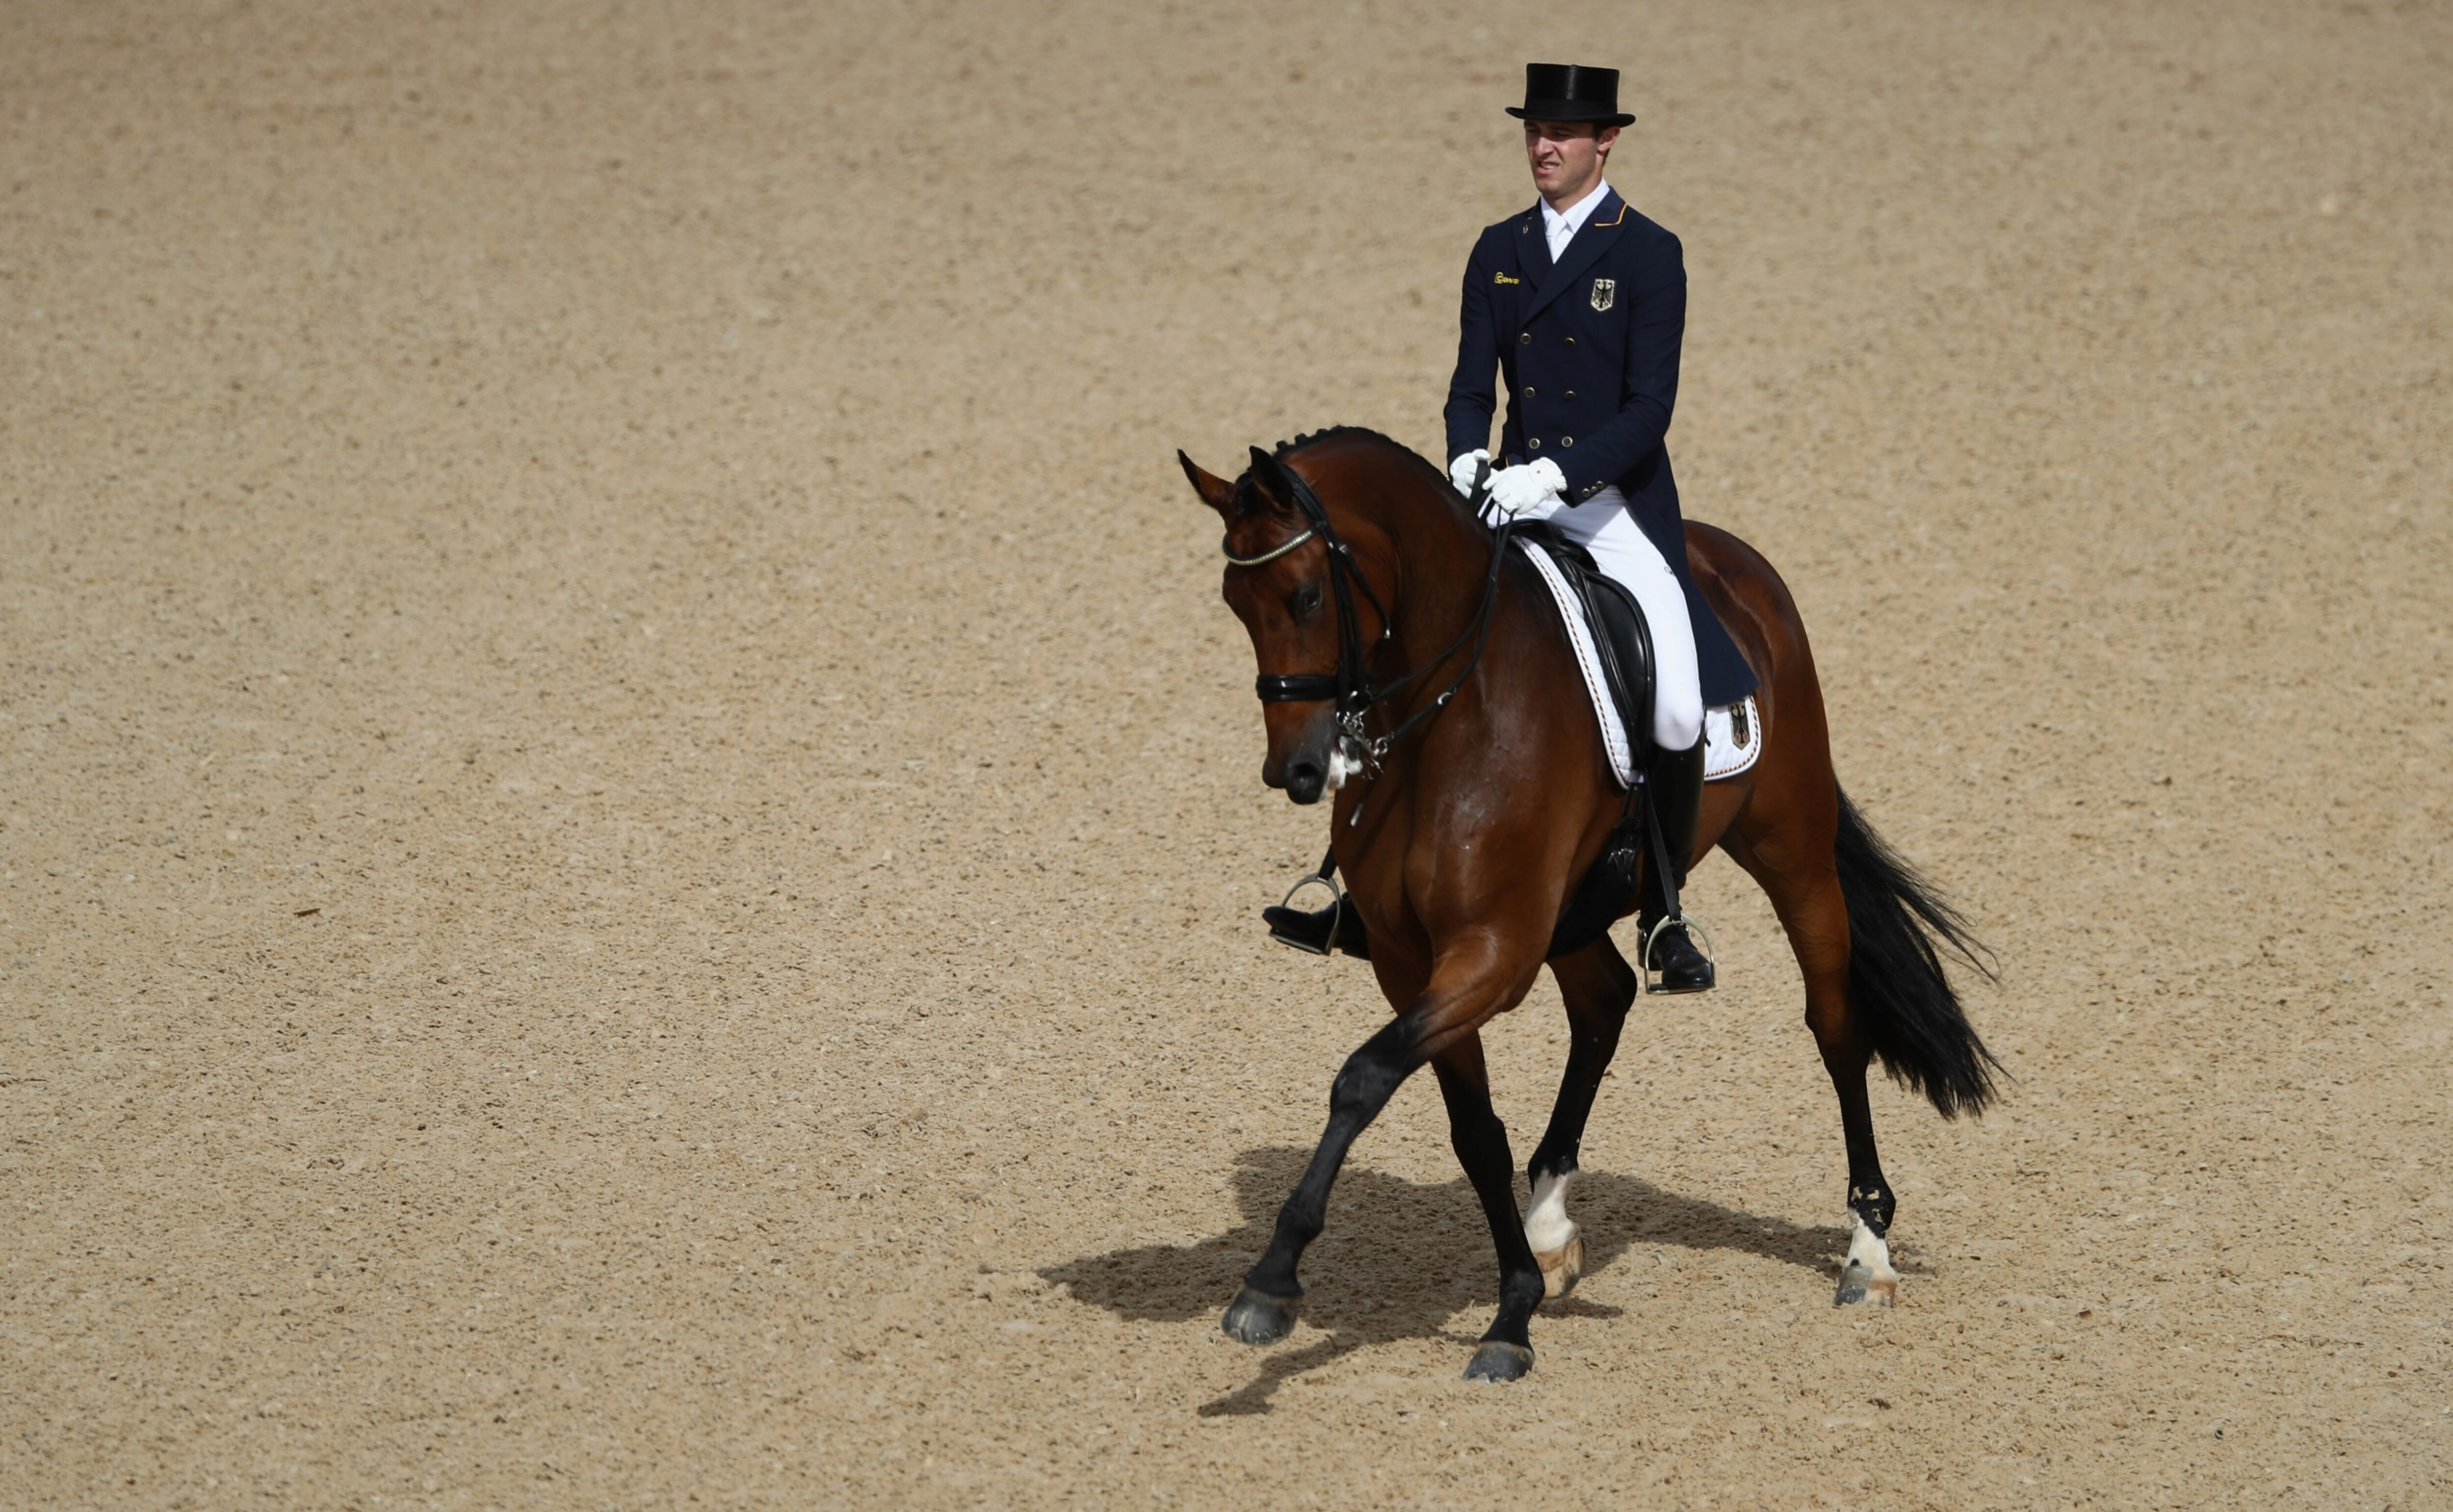 Team Mixed Olympic Equestrian Dressage